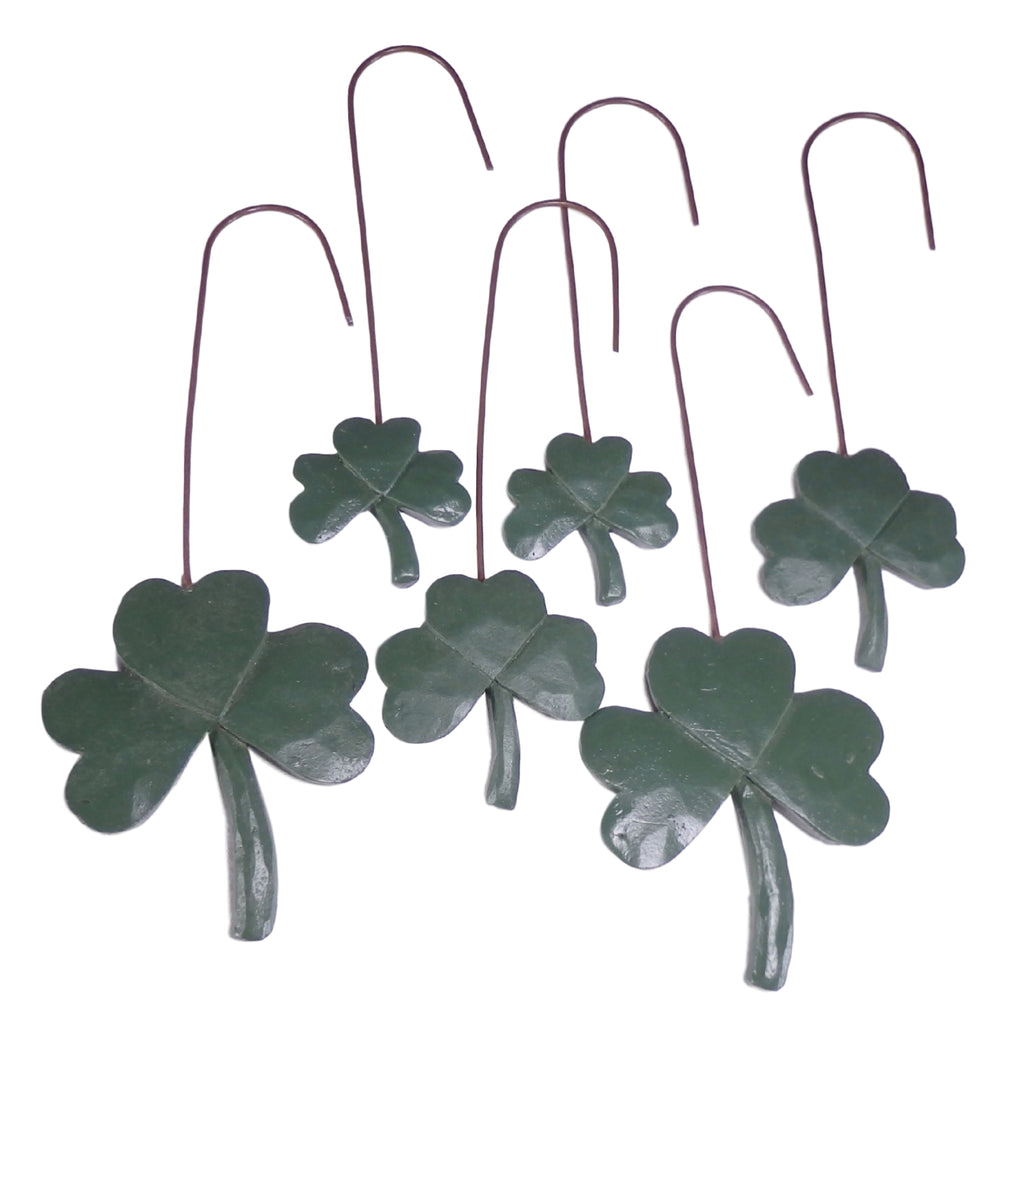 Shamrock Ornament Resin with Metal Hanger Set of 6-Ornament-Oakview Collectibles